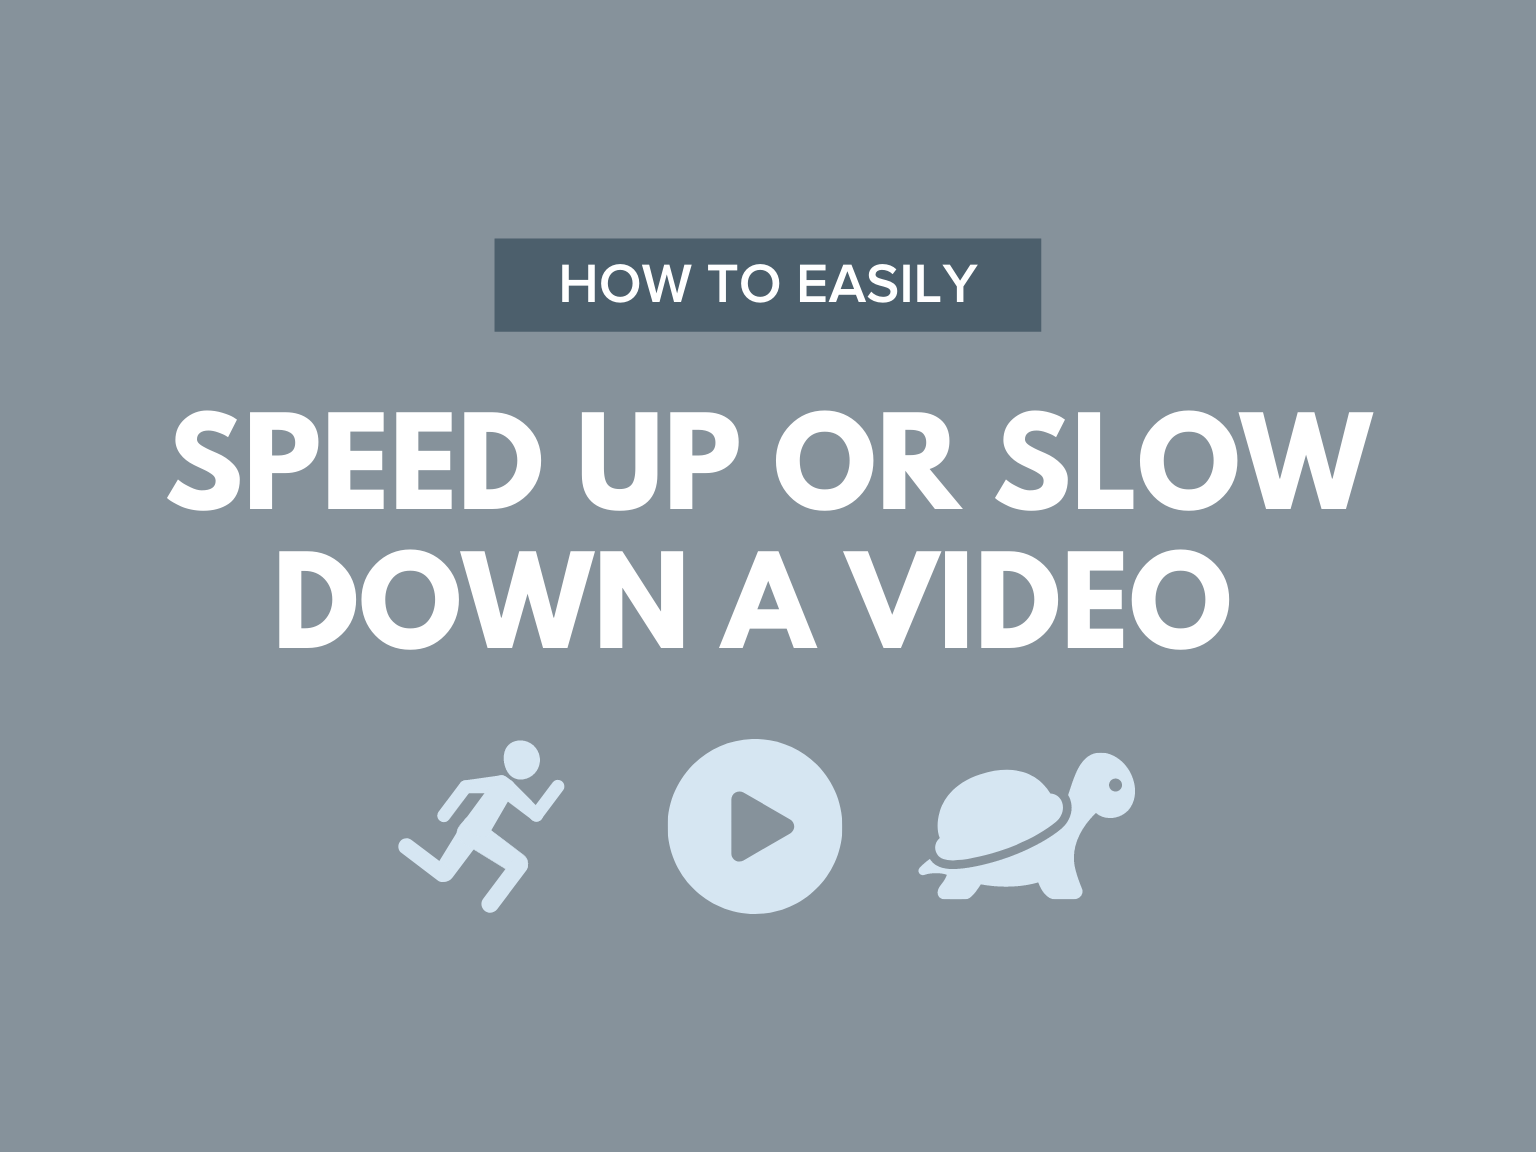 How to Easily Speed up or Slow Down a Video